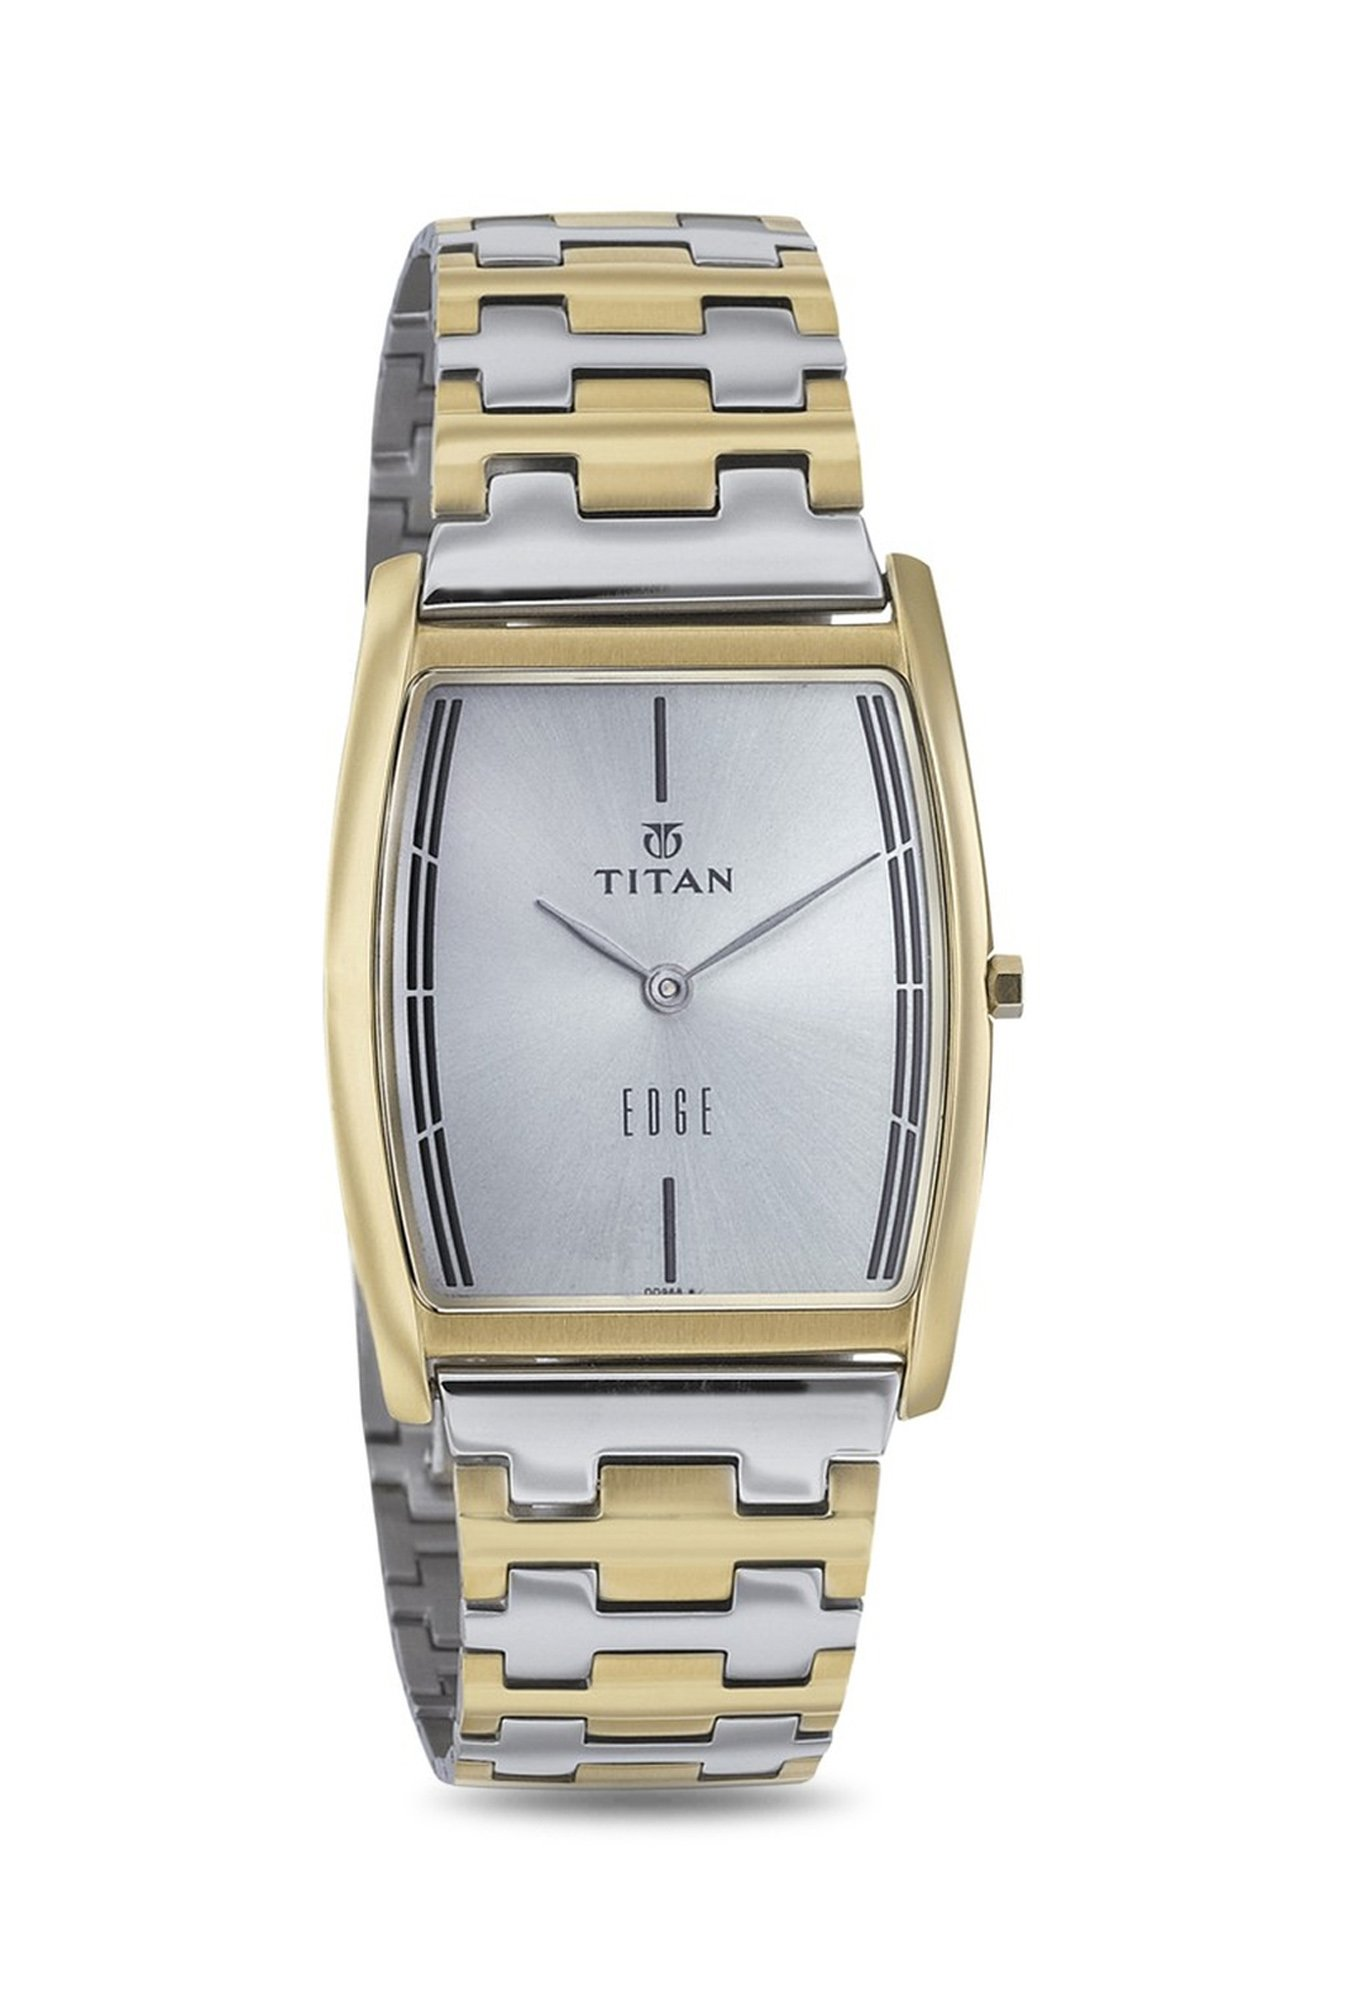 india steel dial mens titan at price best watch colour tonneau online buy edge watches product